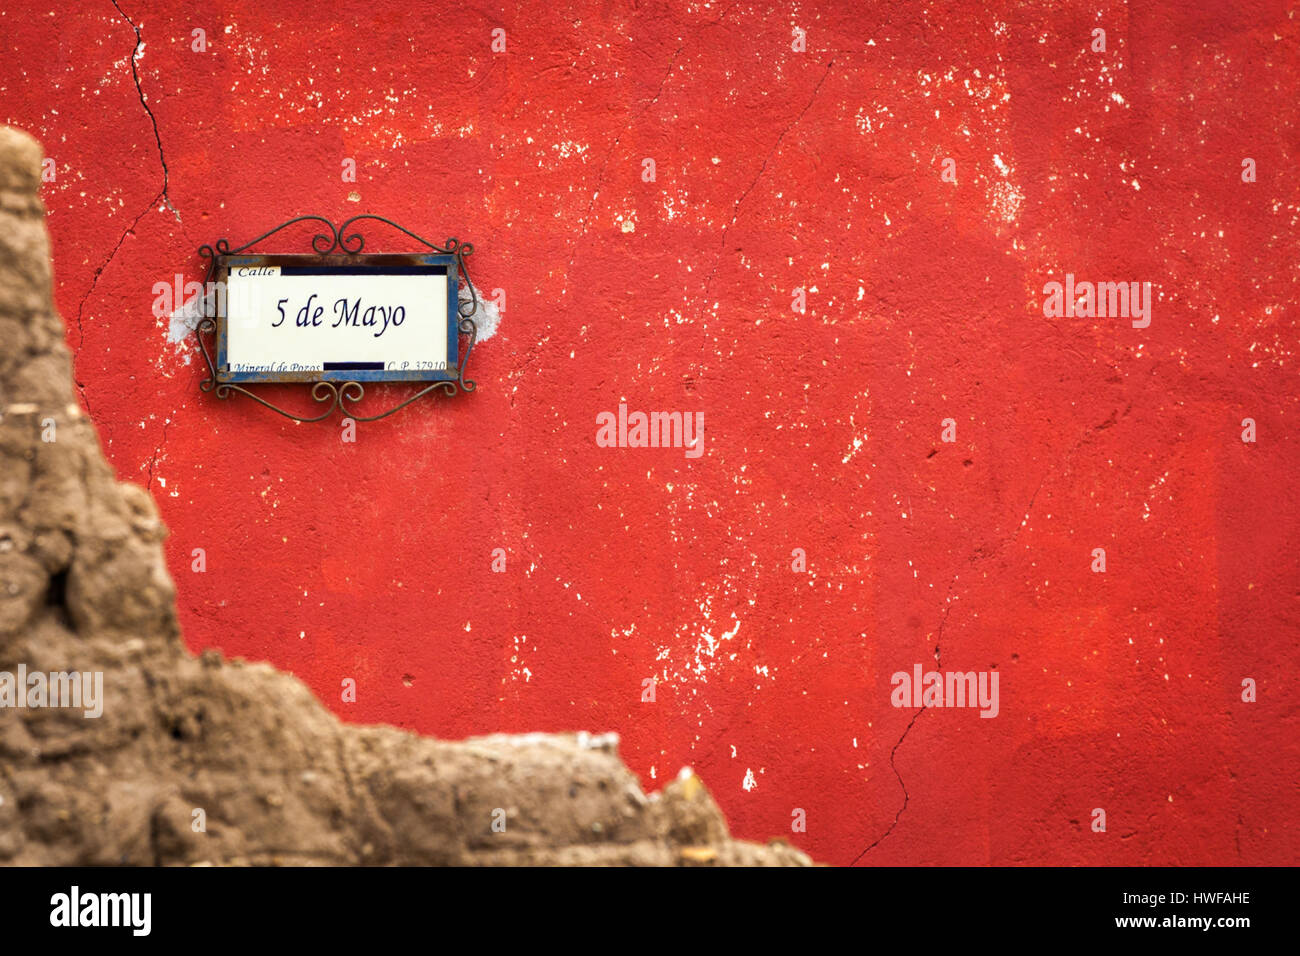 5 de Mayo, a street sign in the ghost town of Mineral de Pozos, Guanajuato, Mexico. - Stock Image